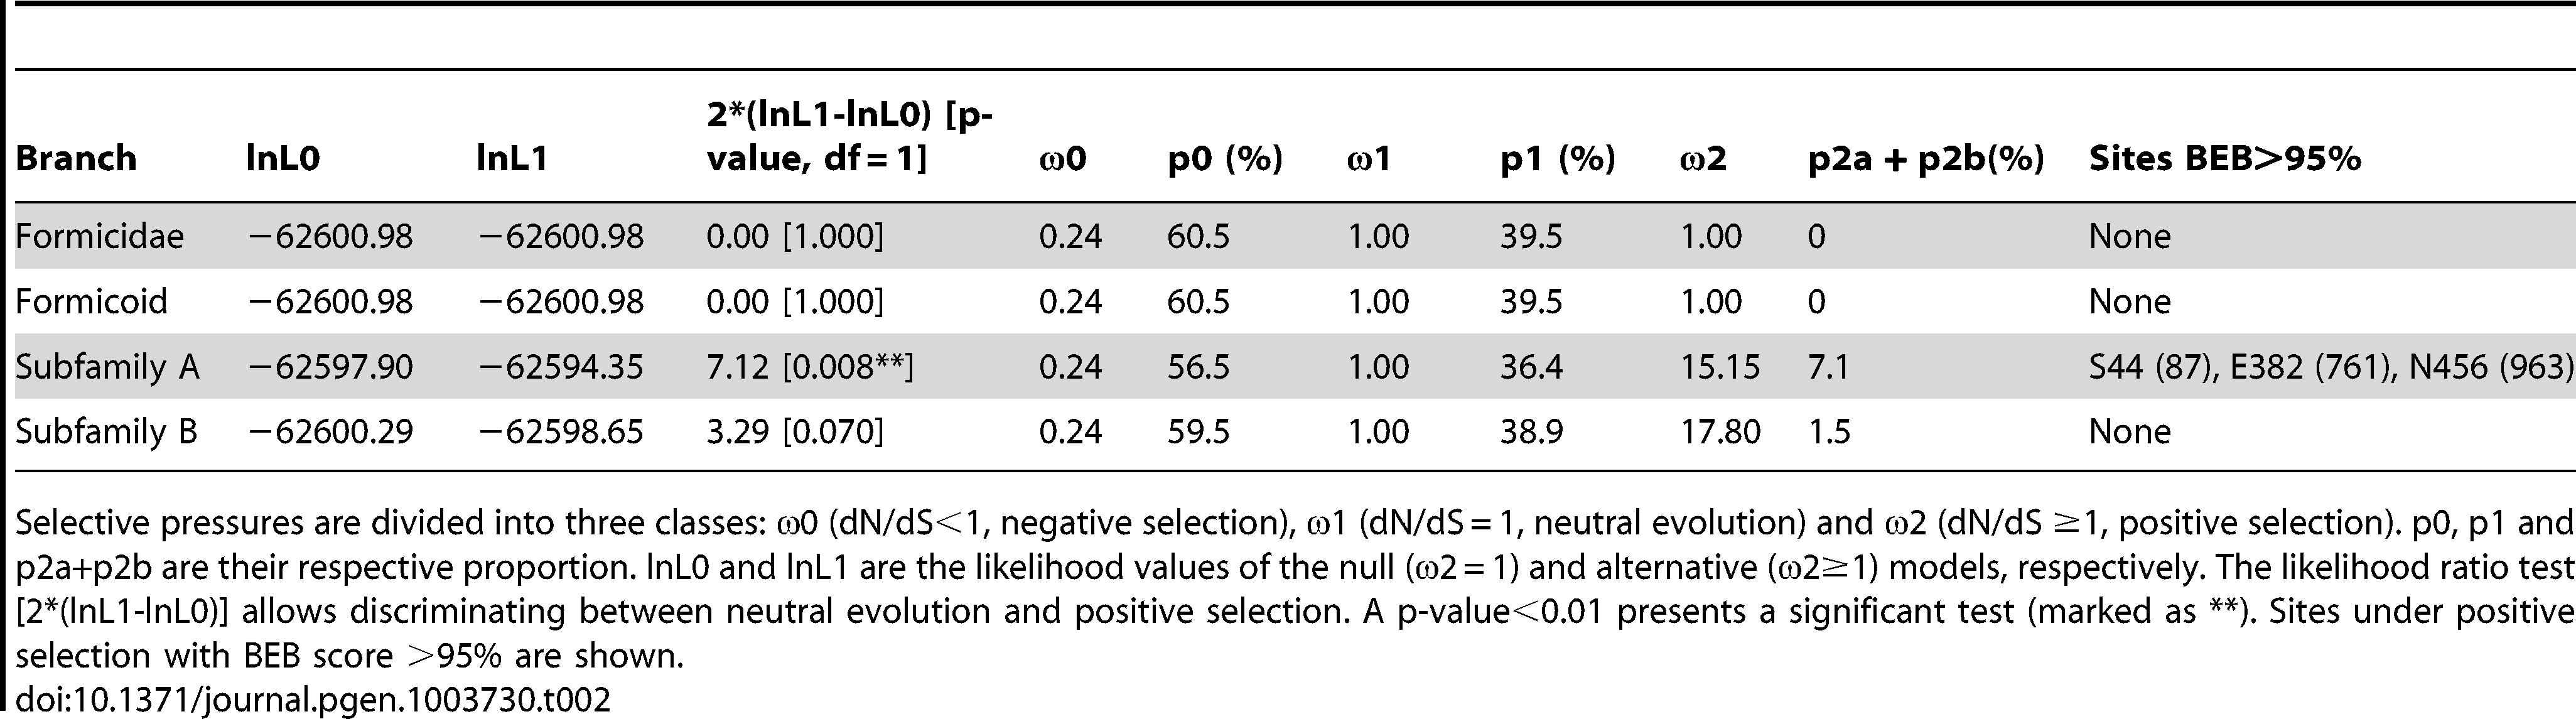 Results of test of positive selection.